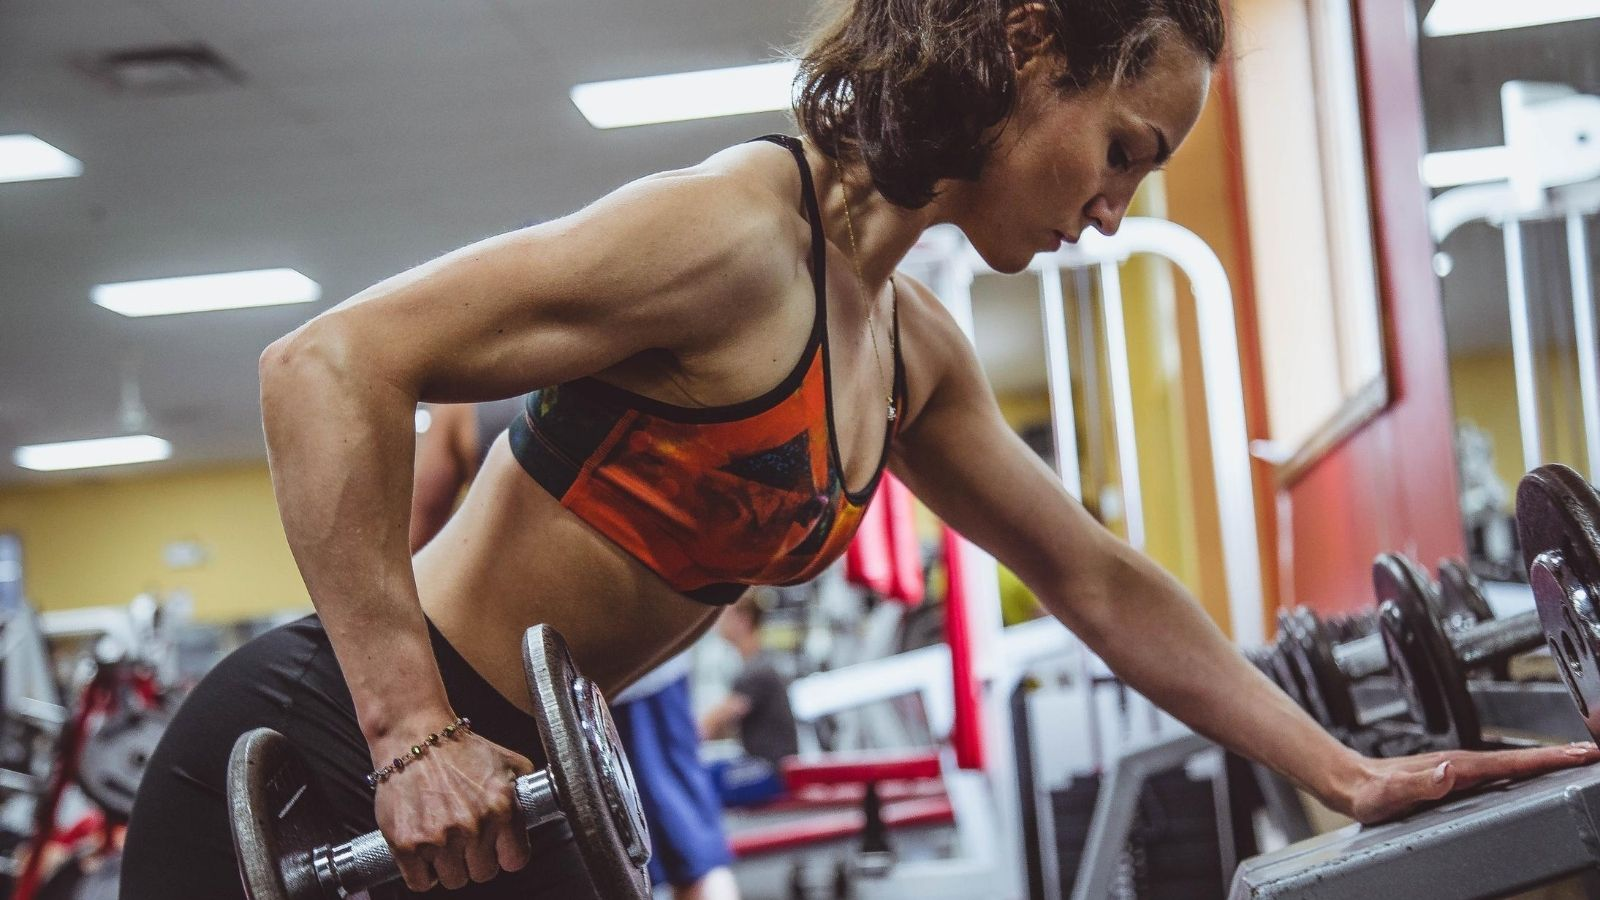 Focused woman lifting heavy weights at the gym